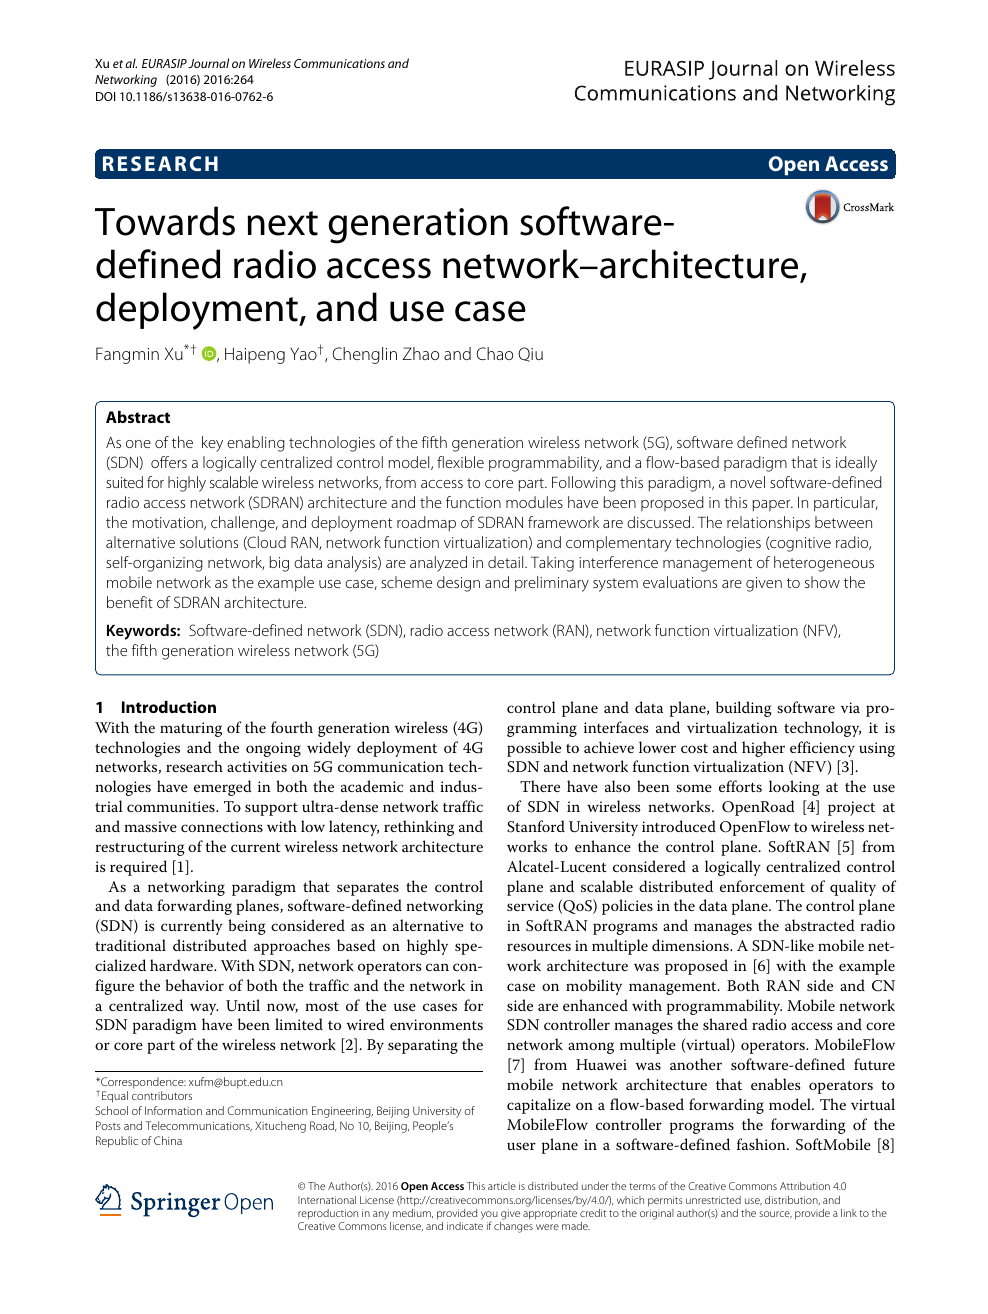 Towards next generation software-defined radio access